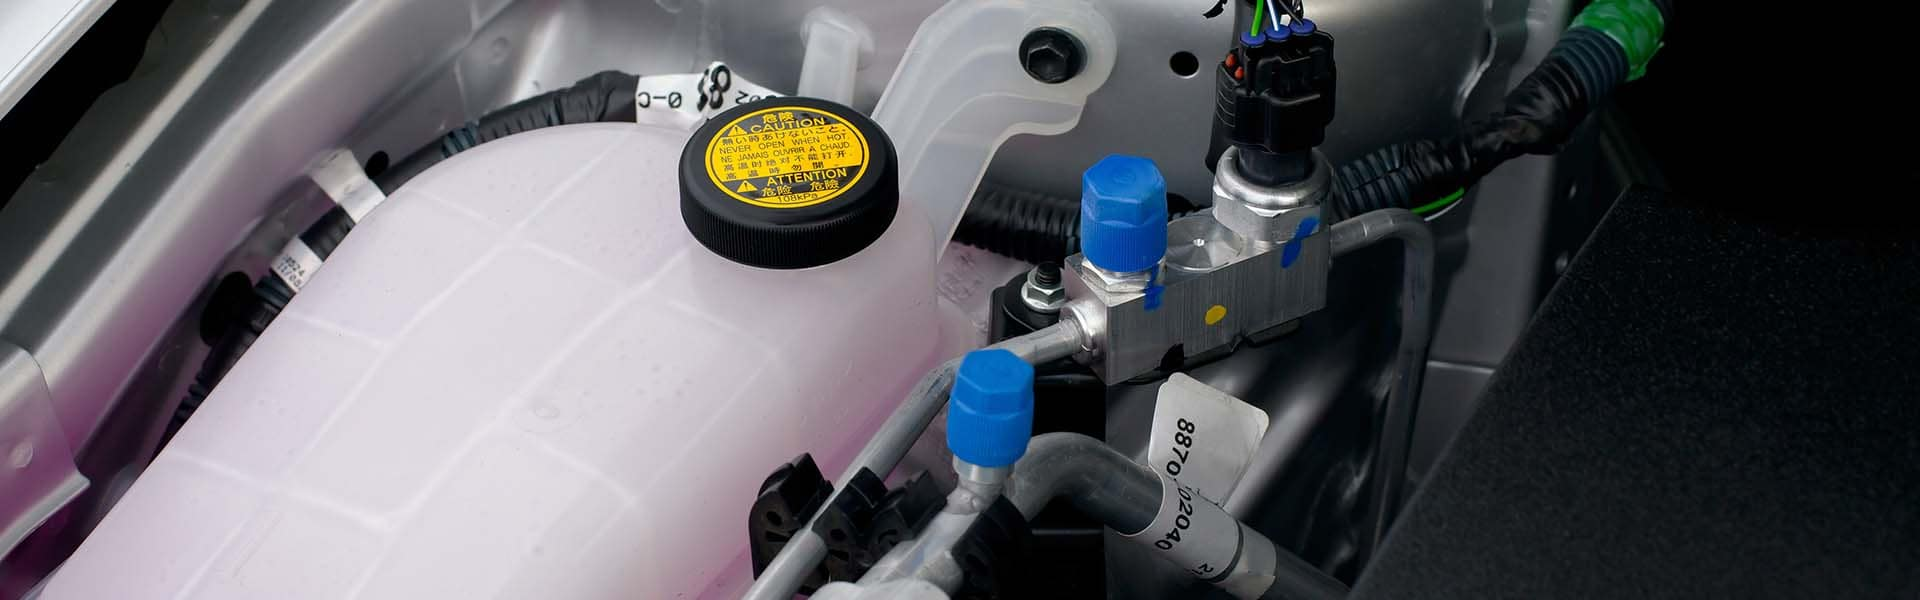 Coolant container in a car engine